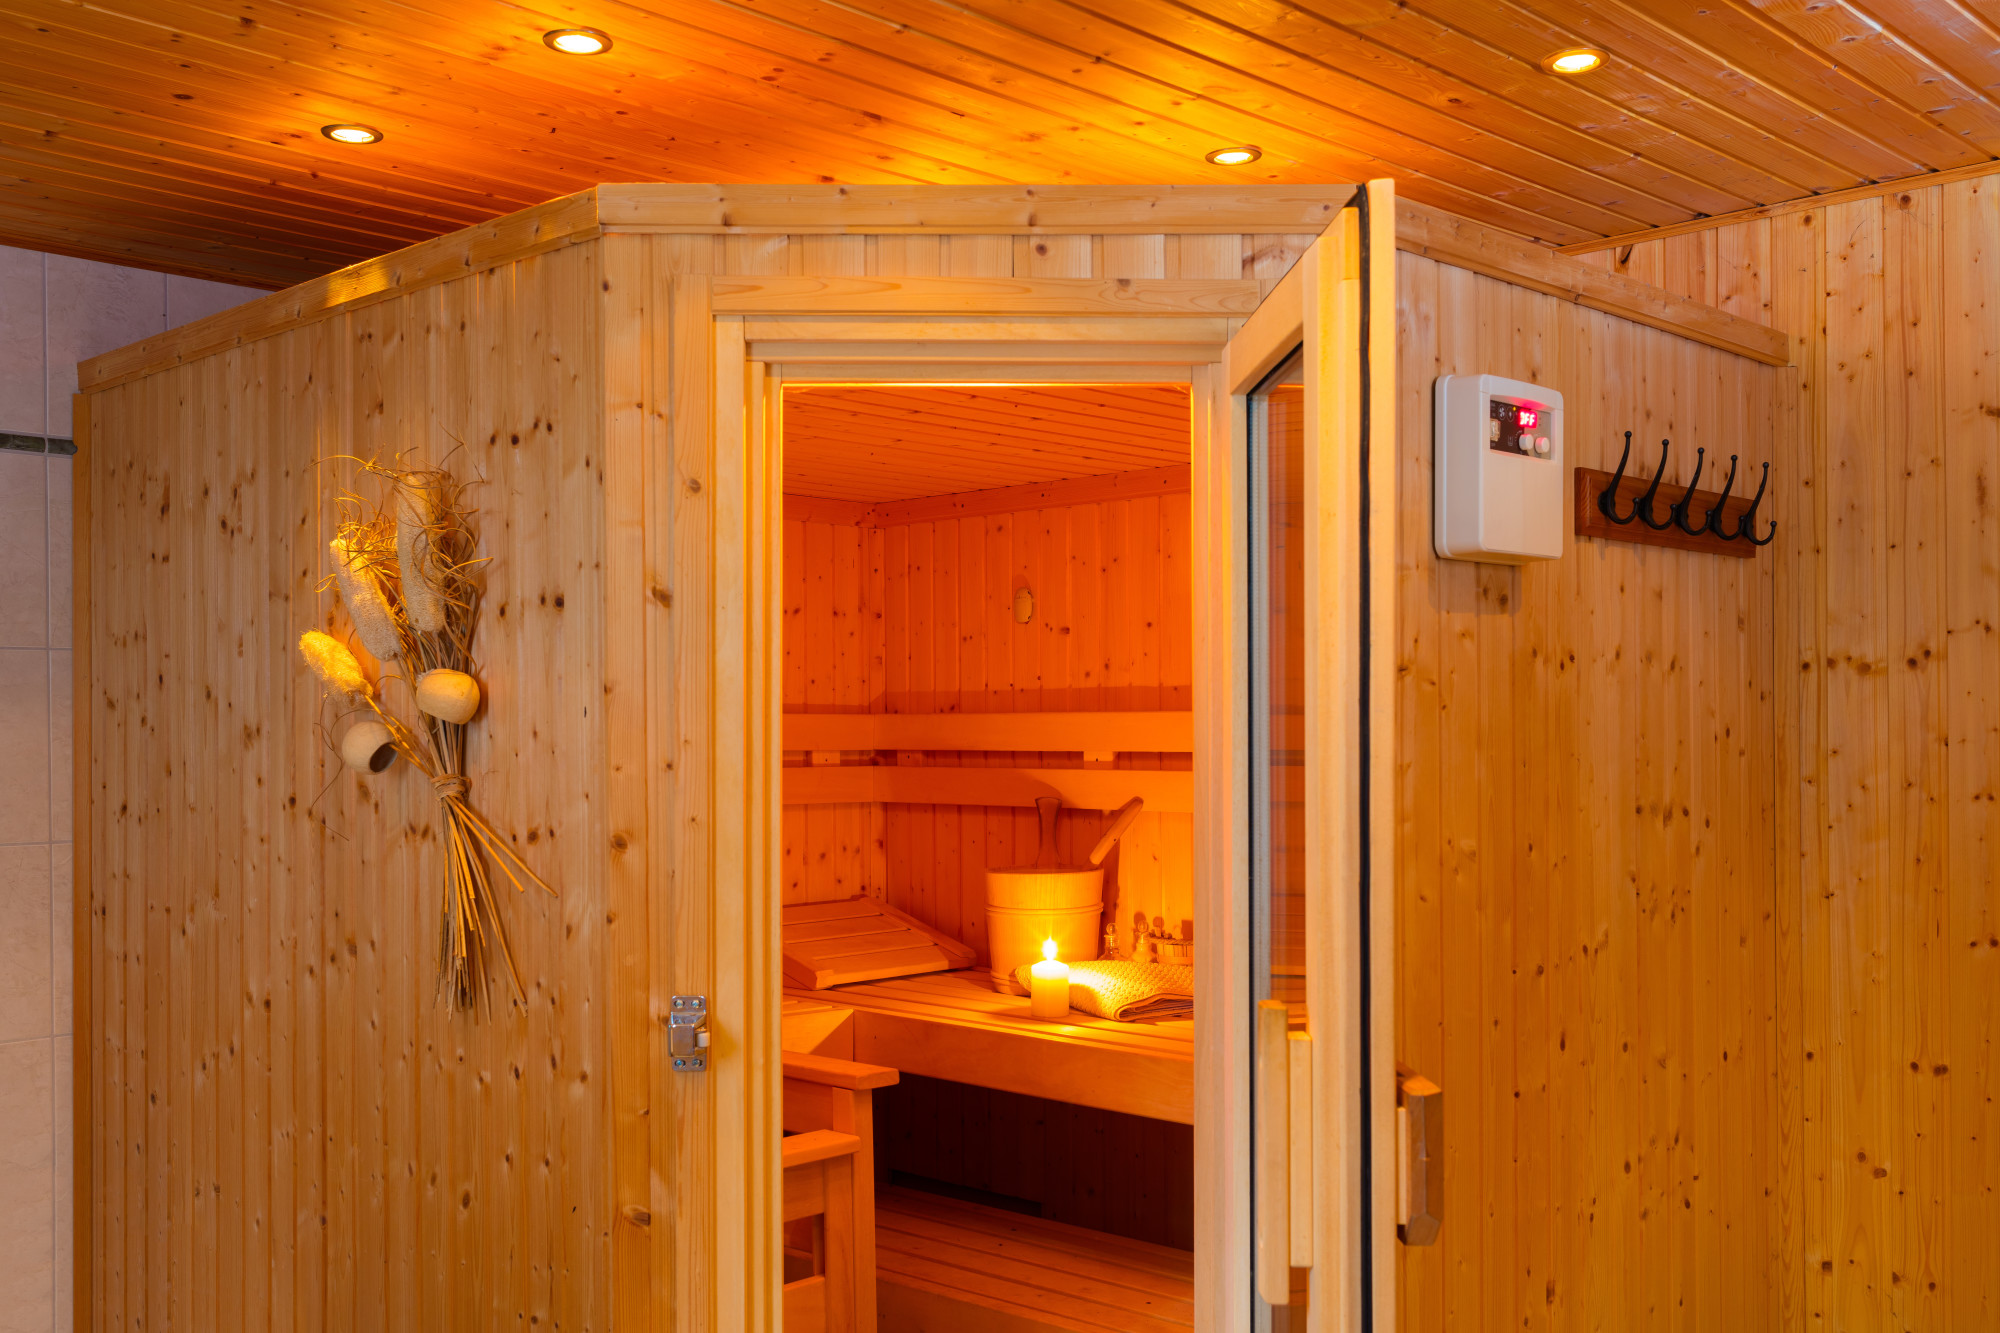 Relaxing at Home: The Top Benefits of Installing an In Home Sauna